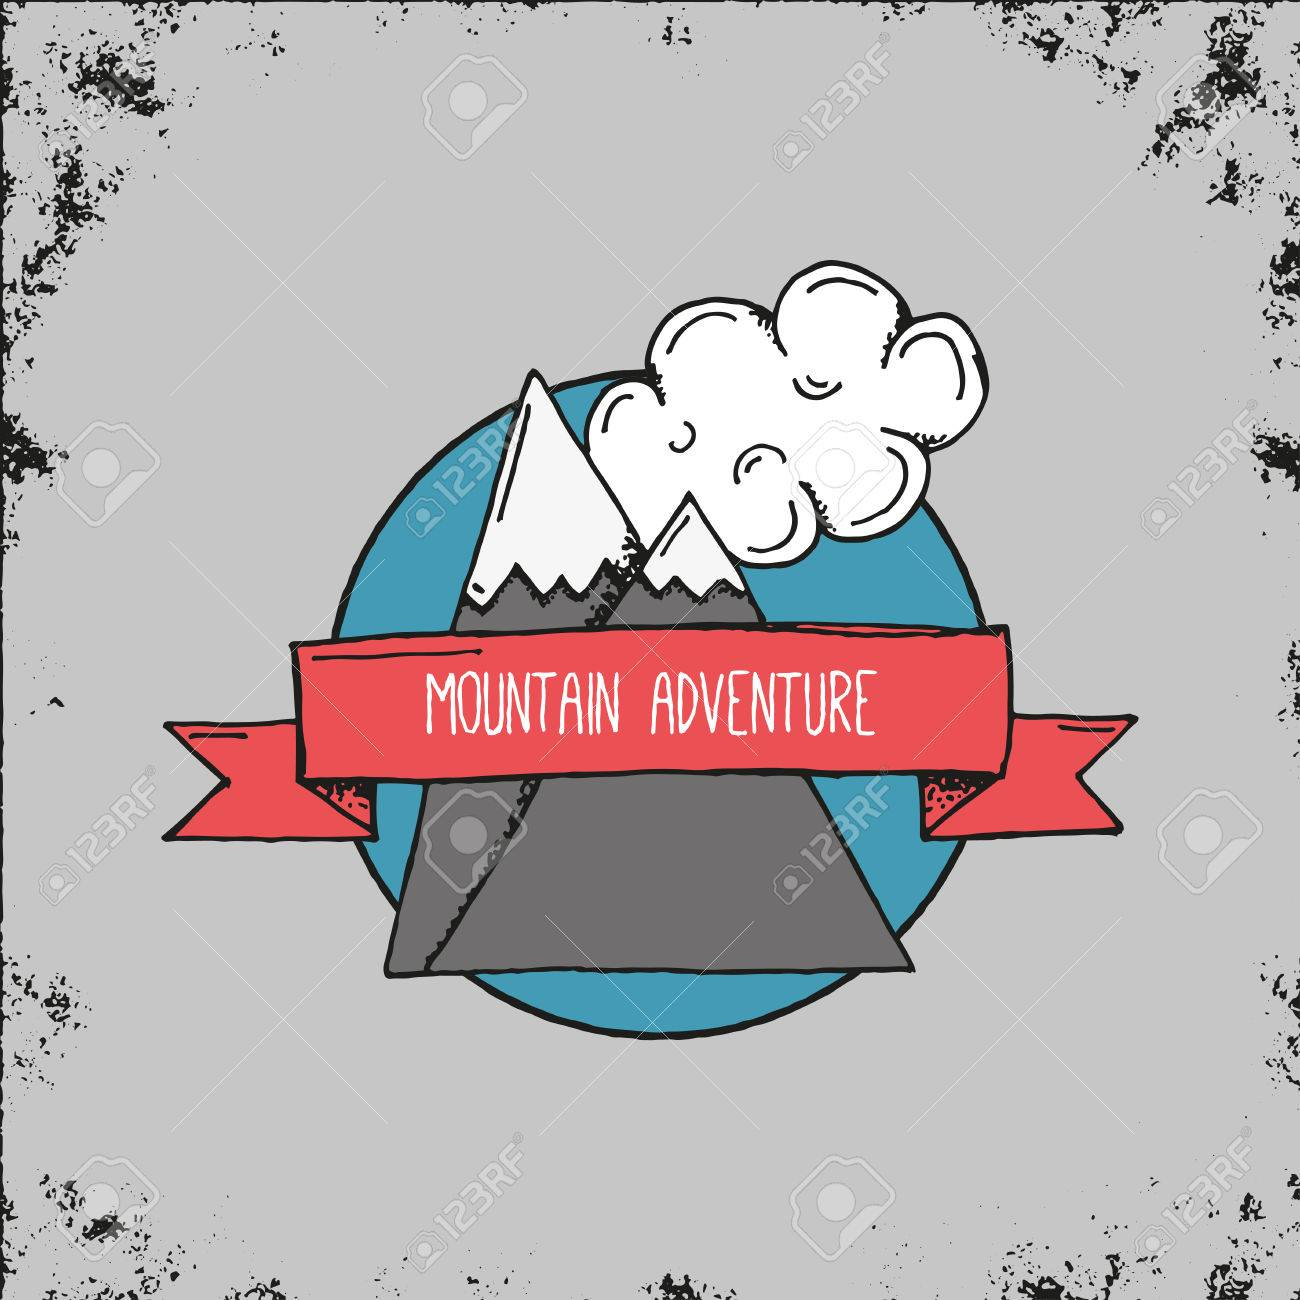 Hand drawn mountain adventure emblem or logo outdoor adventure hand drawn mountain adventure emblem or logo outdoor adventure landscape symbol with two rocks and biocorpaavc